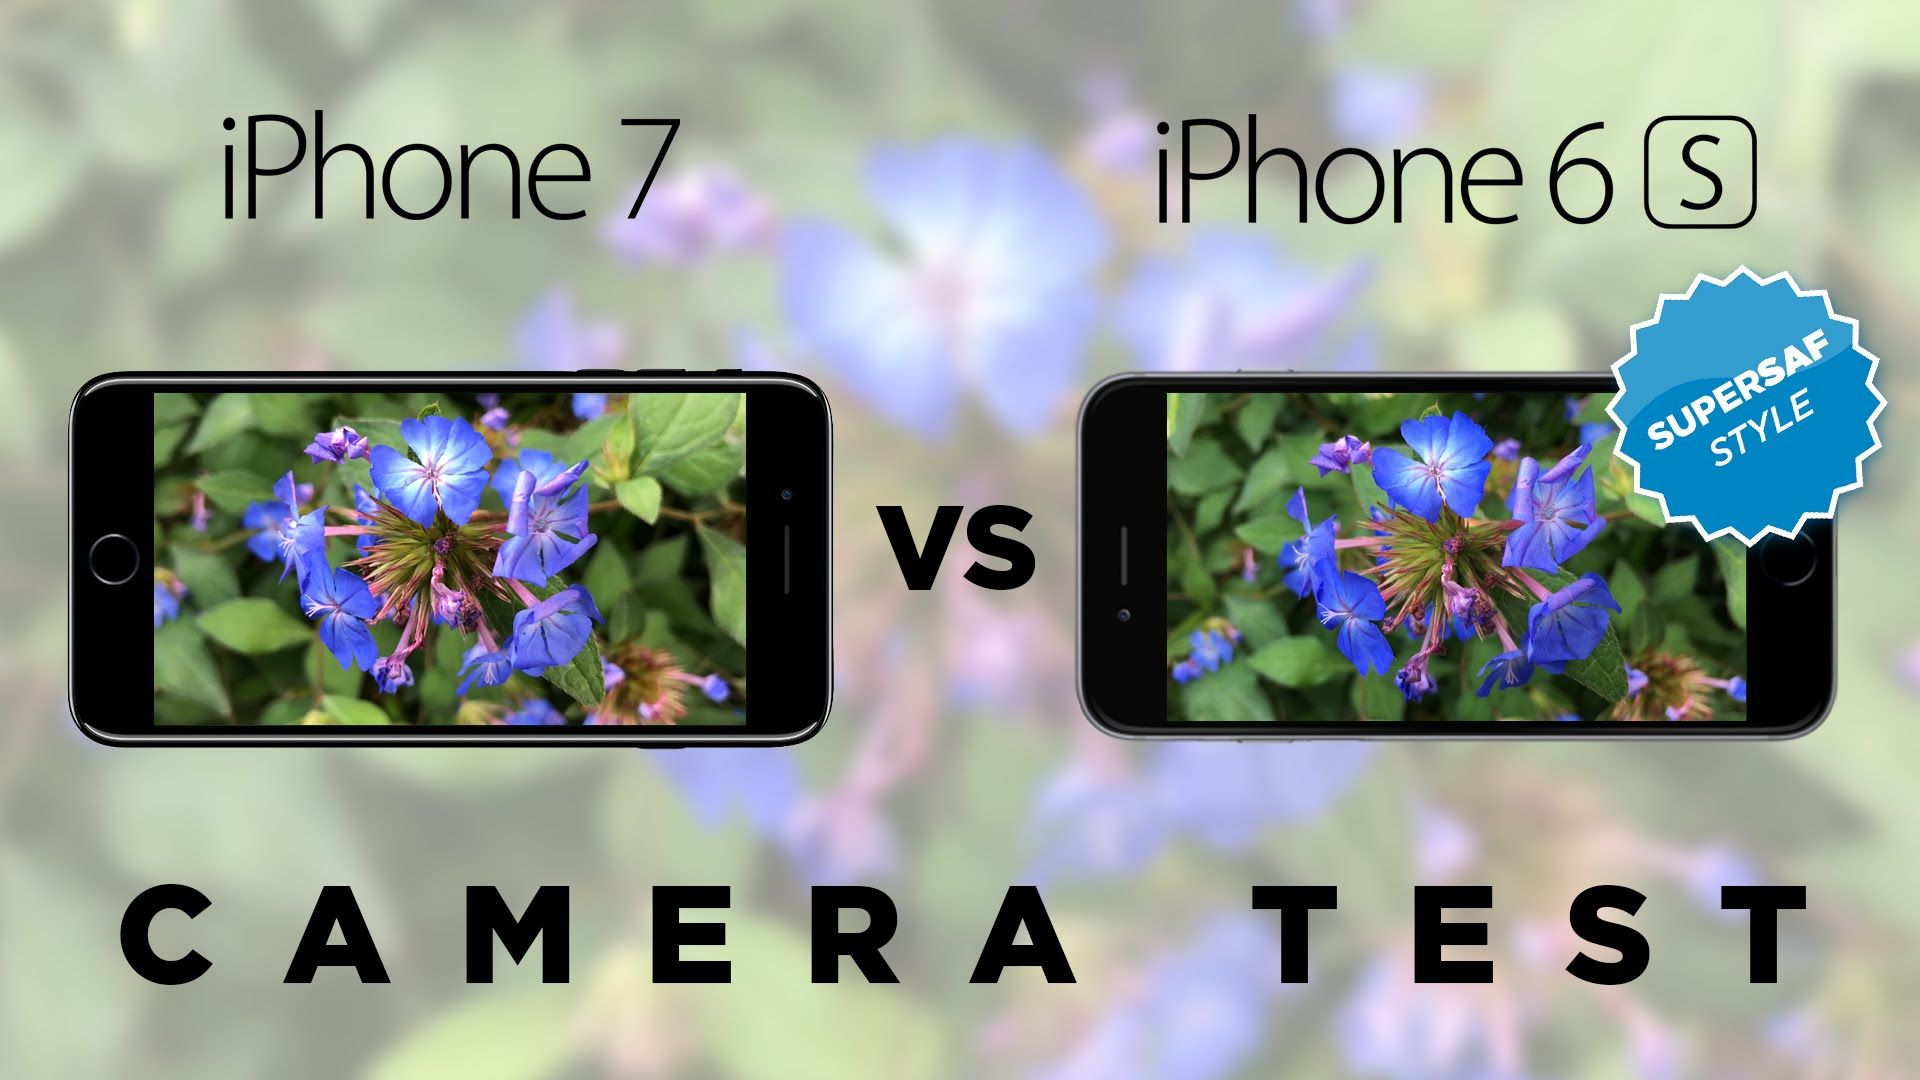 Iphone 7 Camera Megapixels Vs 6s